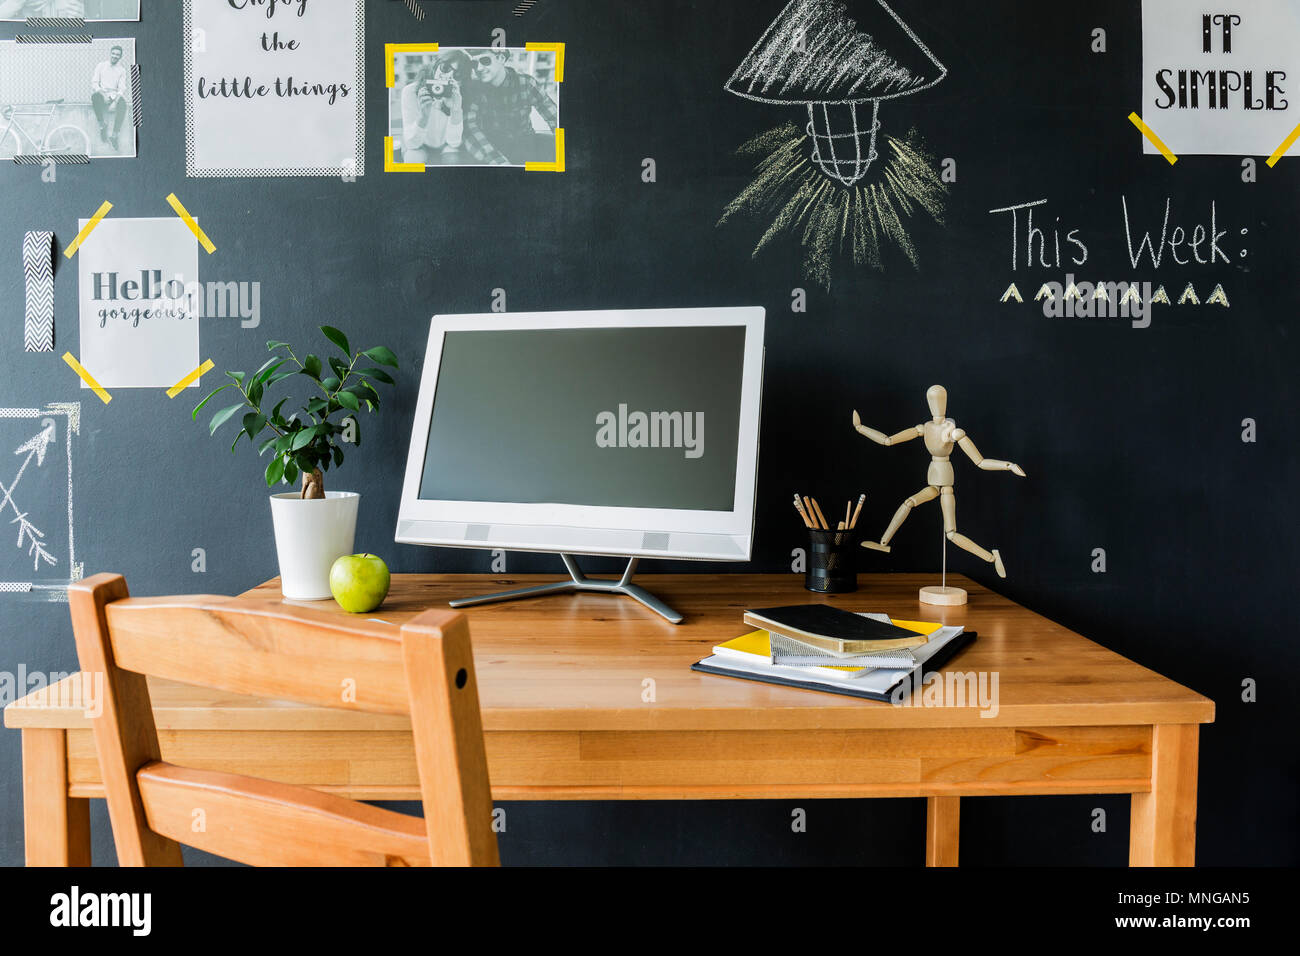 Large wooden desk photos large wooden desk images alamy